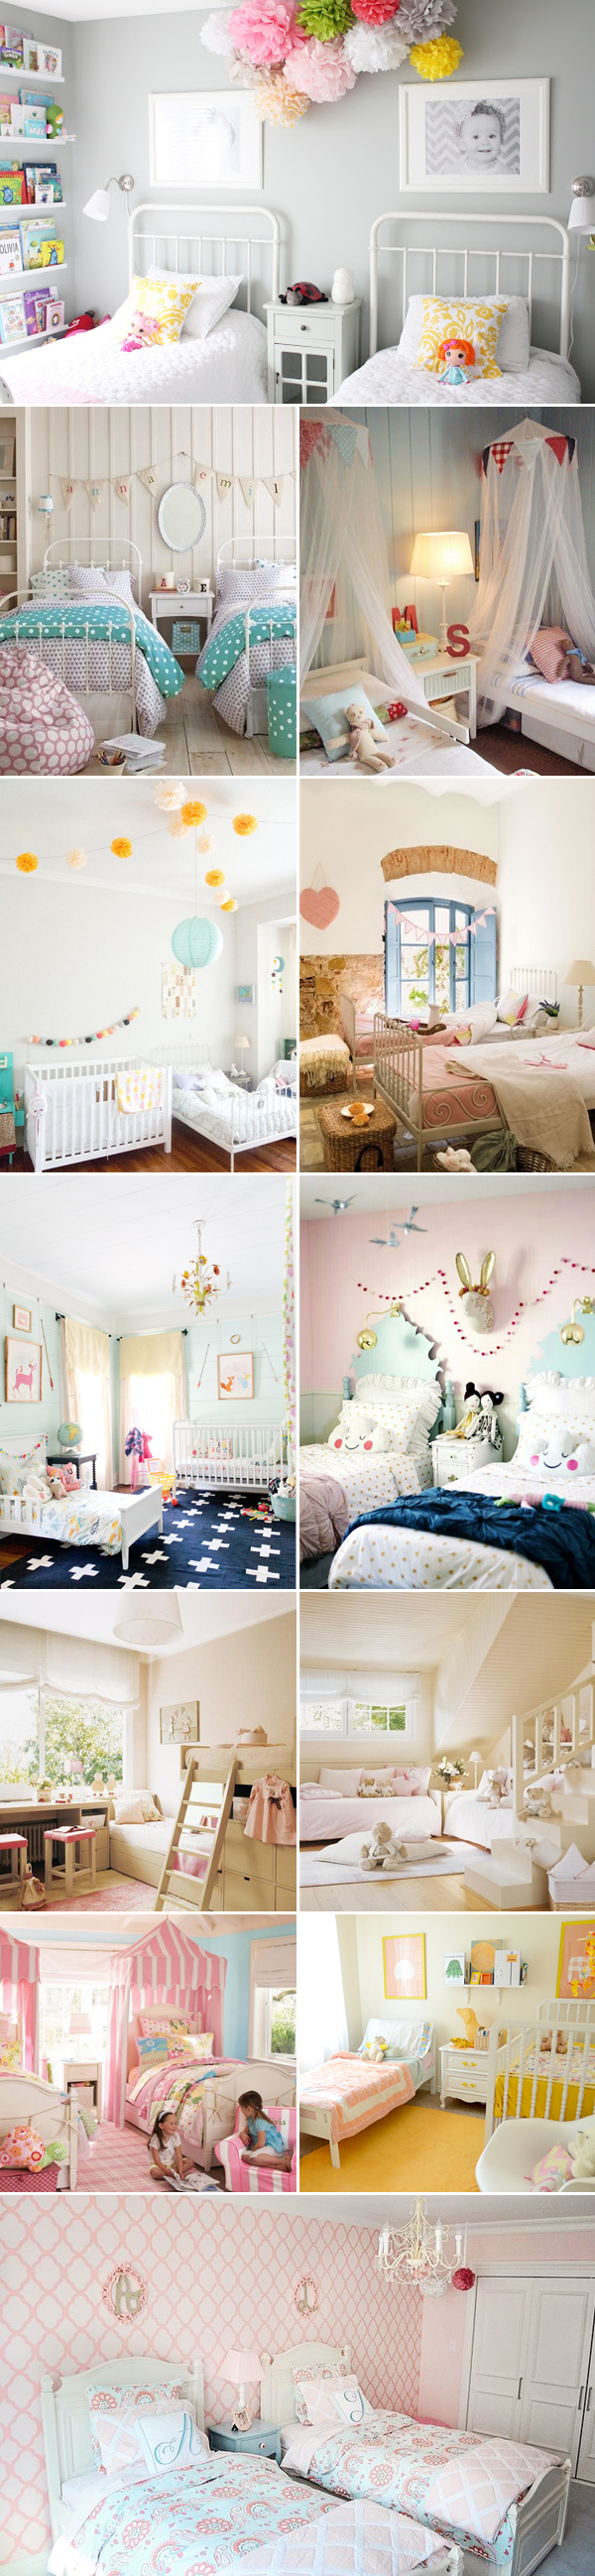 29 Shared Bedrooms Ideas For Children Praise Wedding